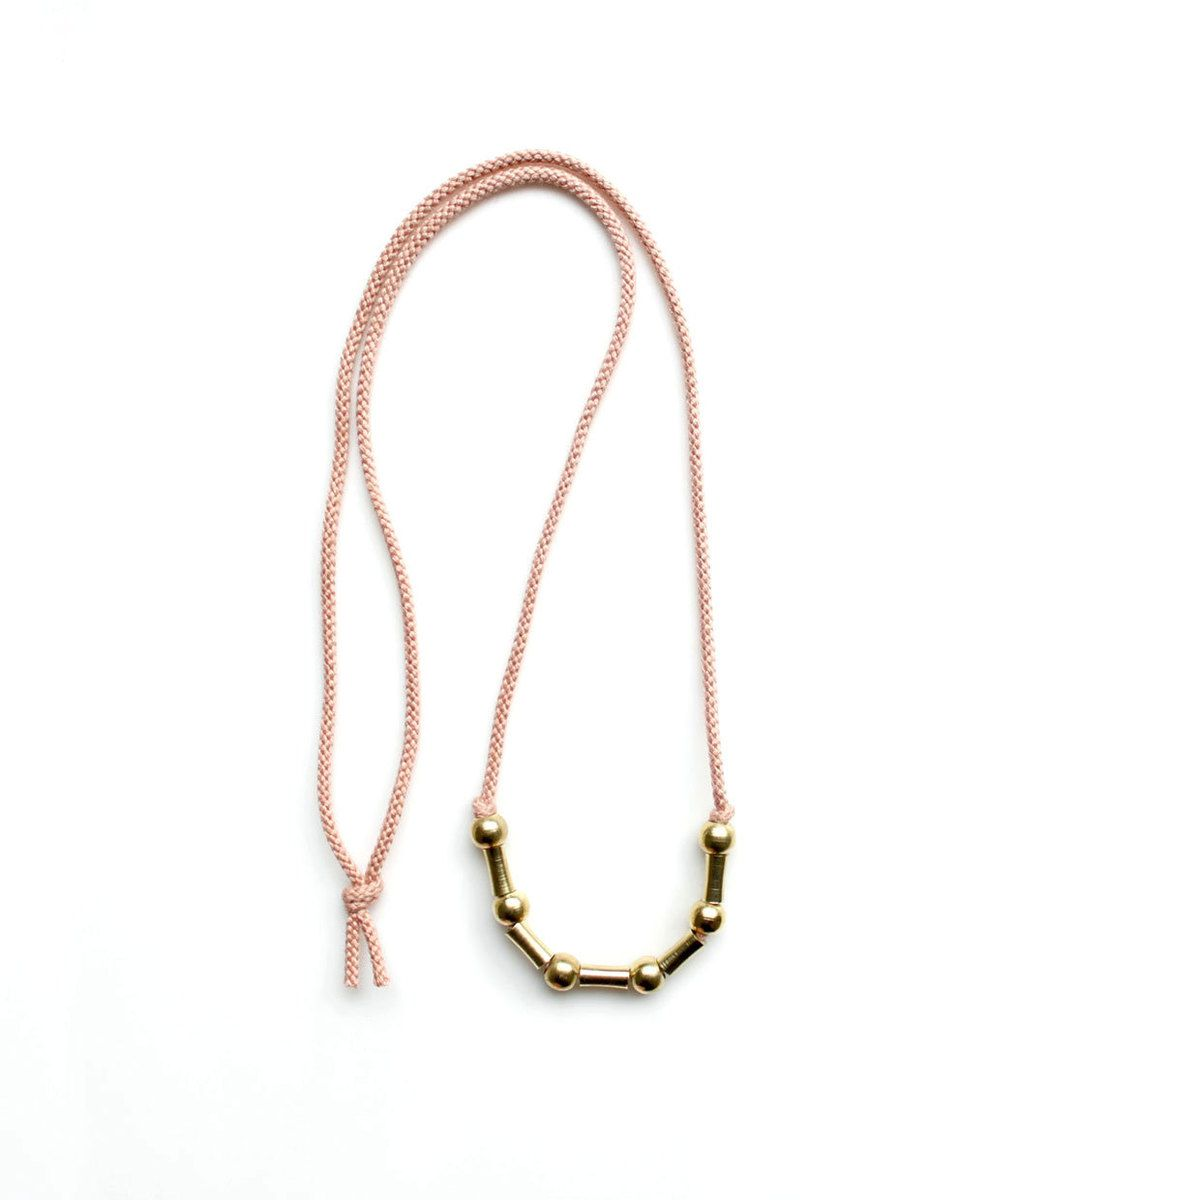 black skirts chain dresses products collections enamel beads waterdrop necklace braided leather rope